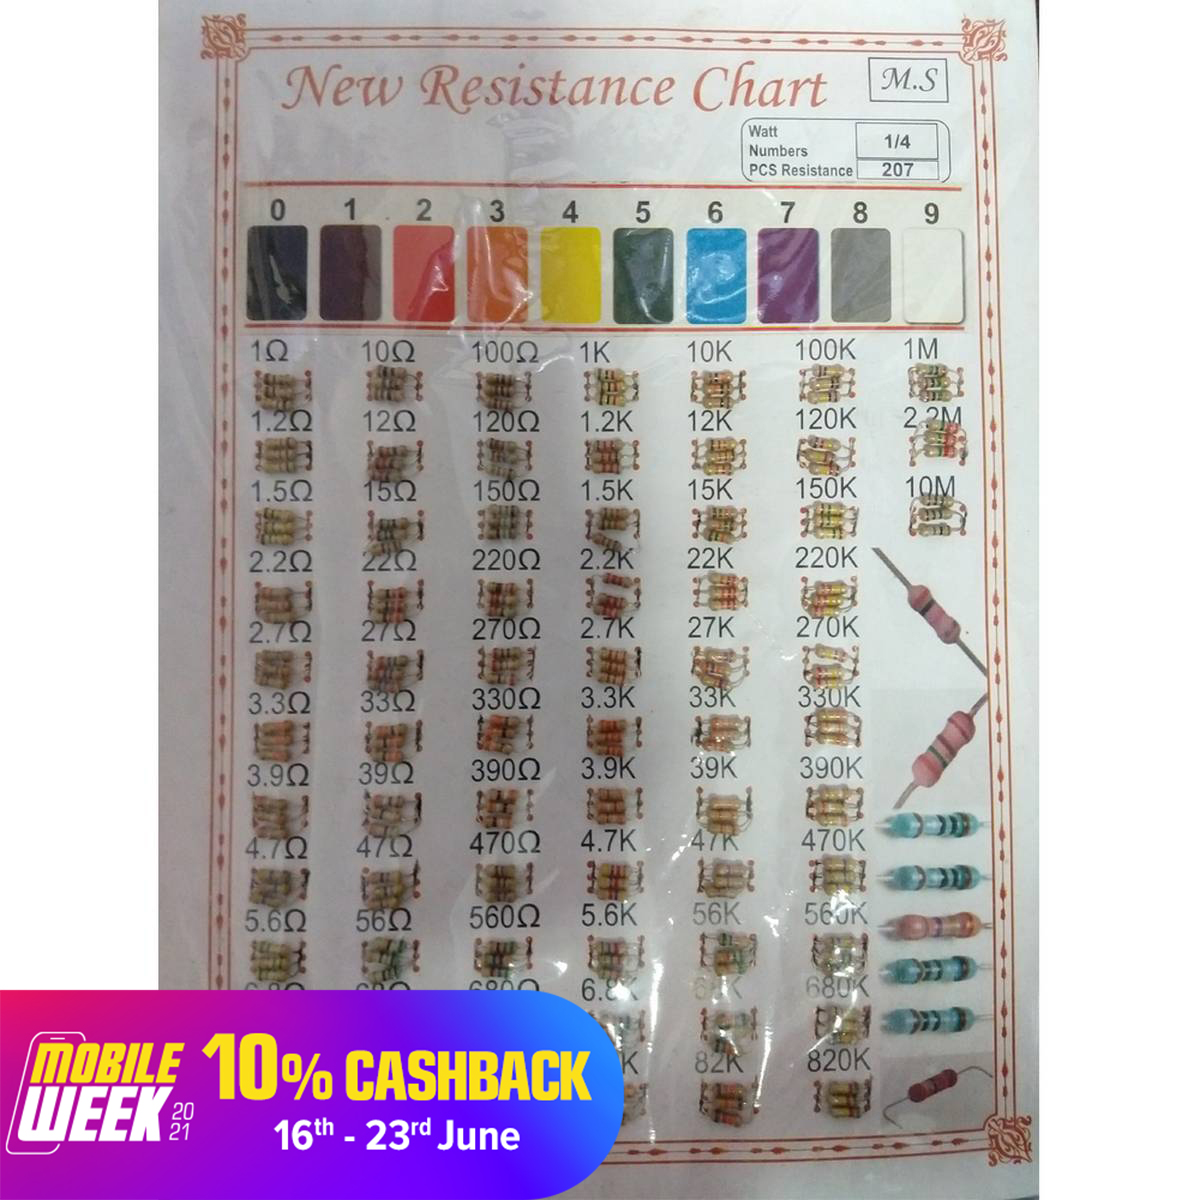 207 Pcs High Quality Resistor With 66 Tpye Of Value (New Resistance Chart)